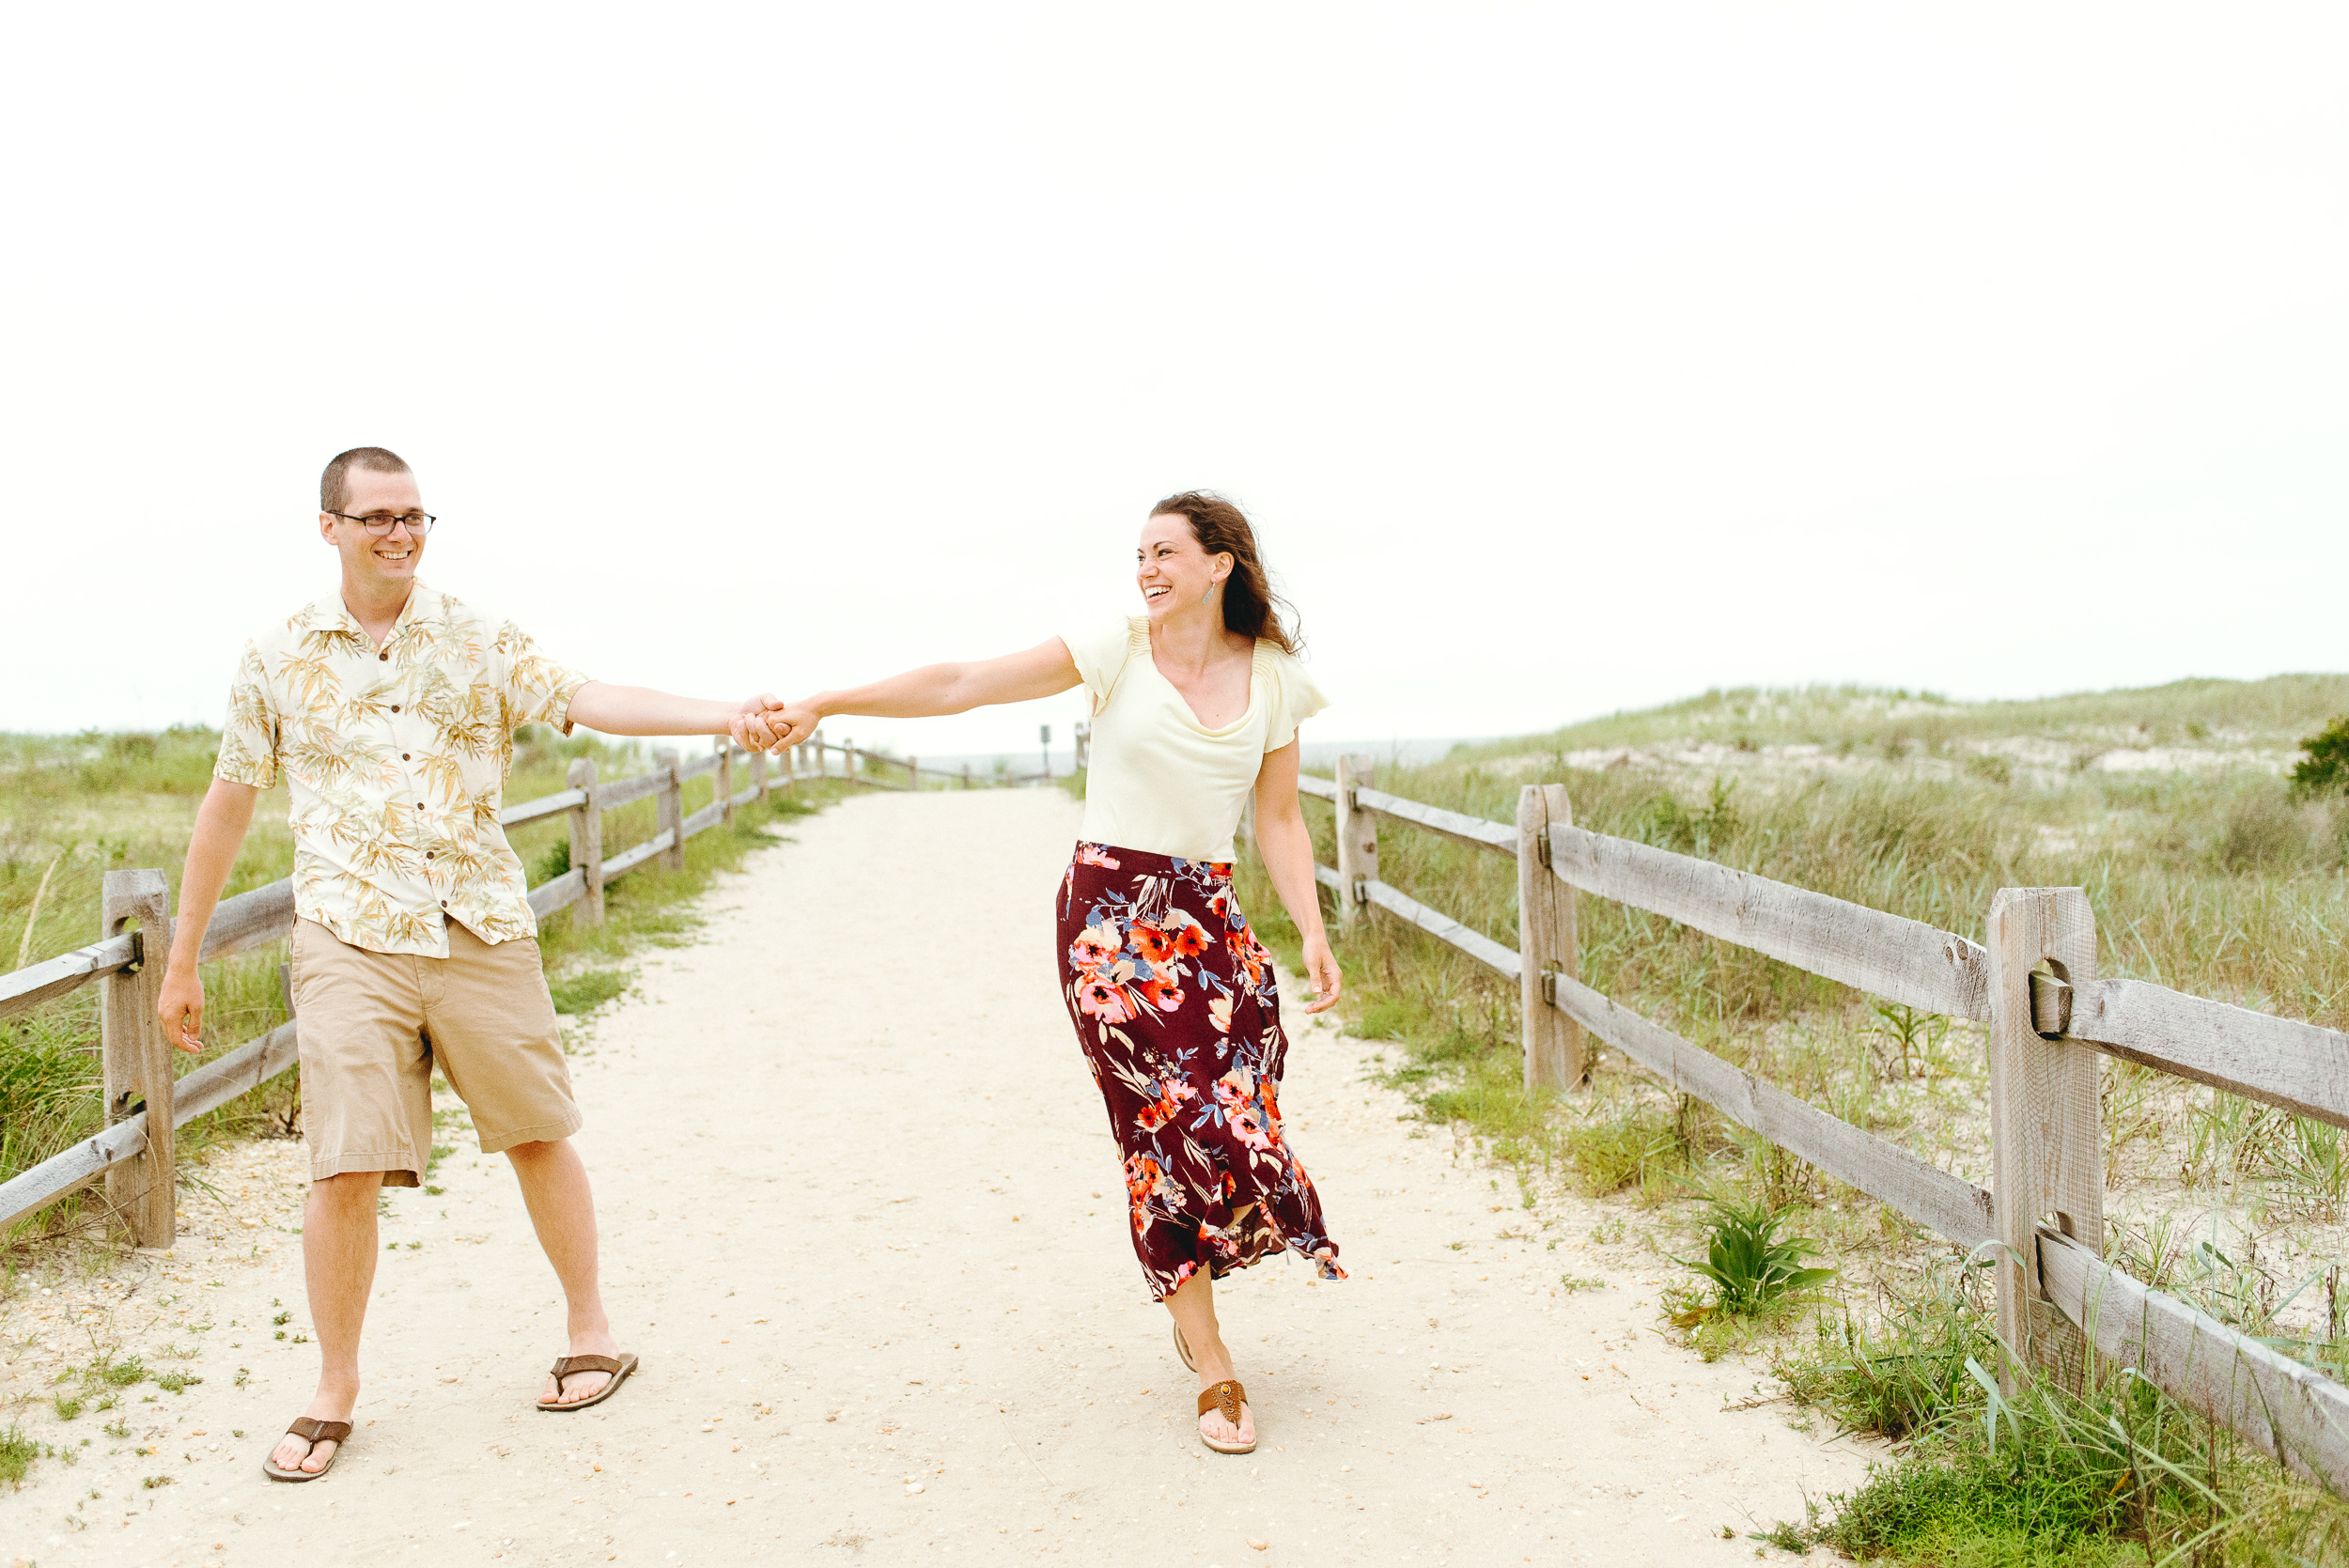 Ocean-City-New-Jersey- Beach-Engagemnt-Peaberry-Photography-Philadelphia-Wedding-Photographer-007.jpg